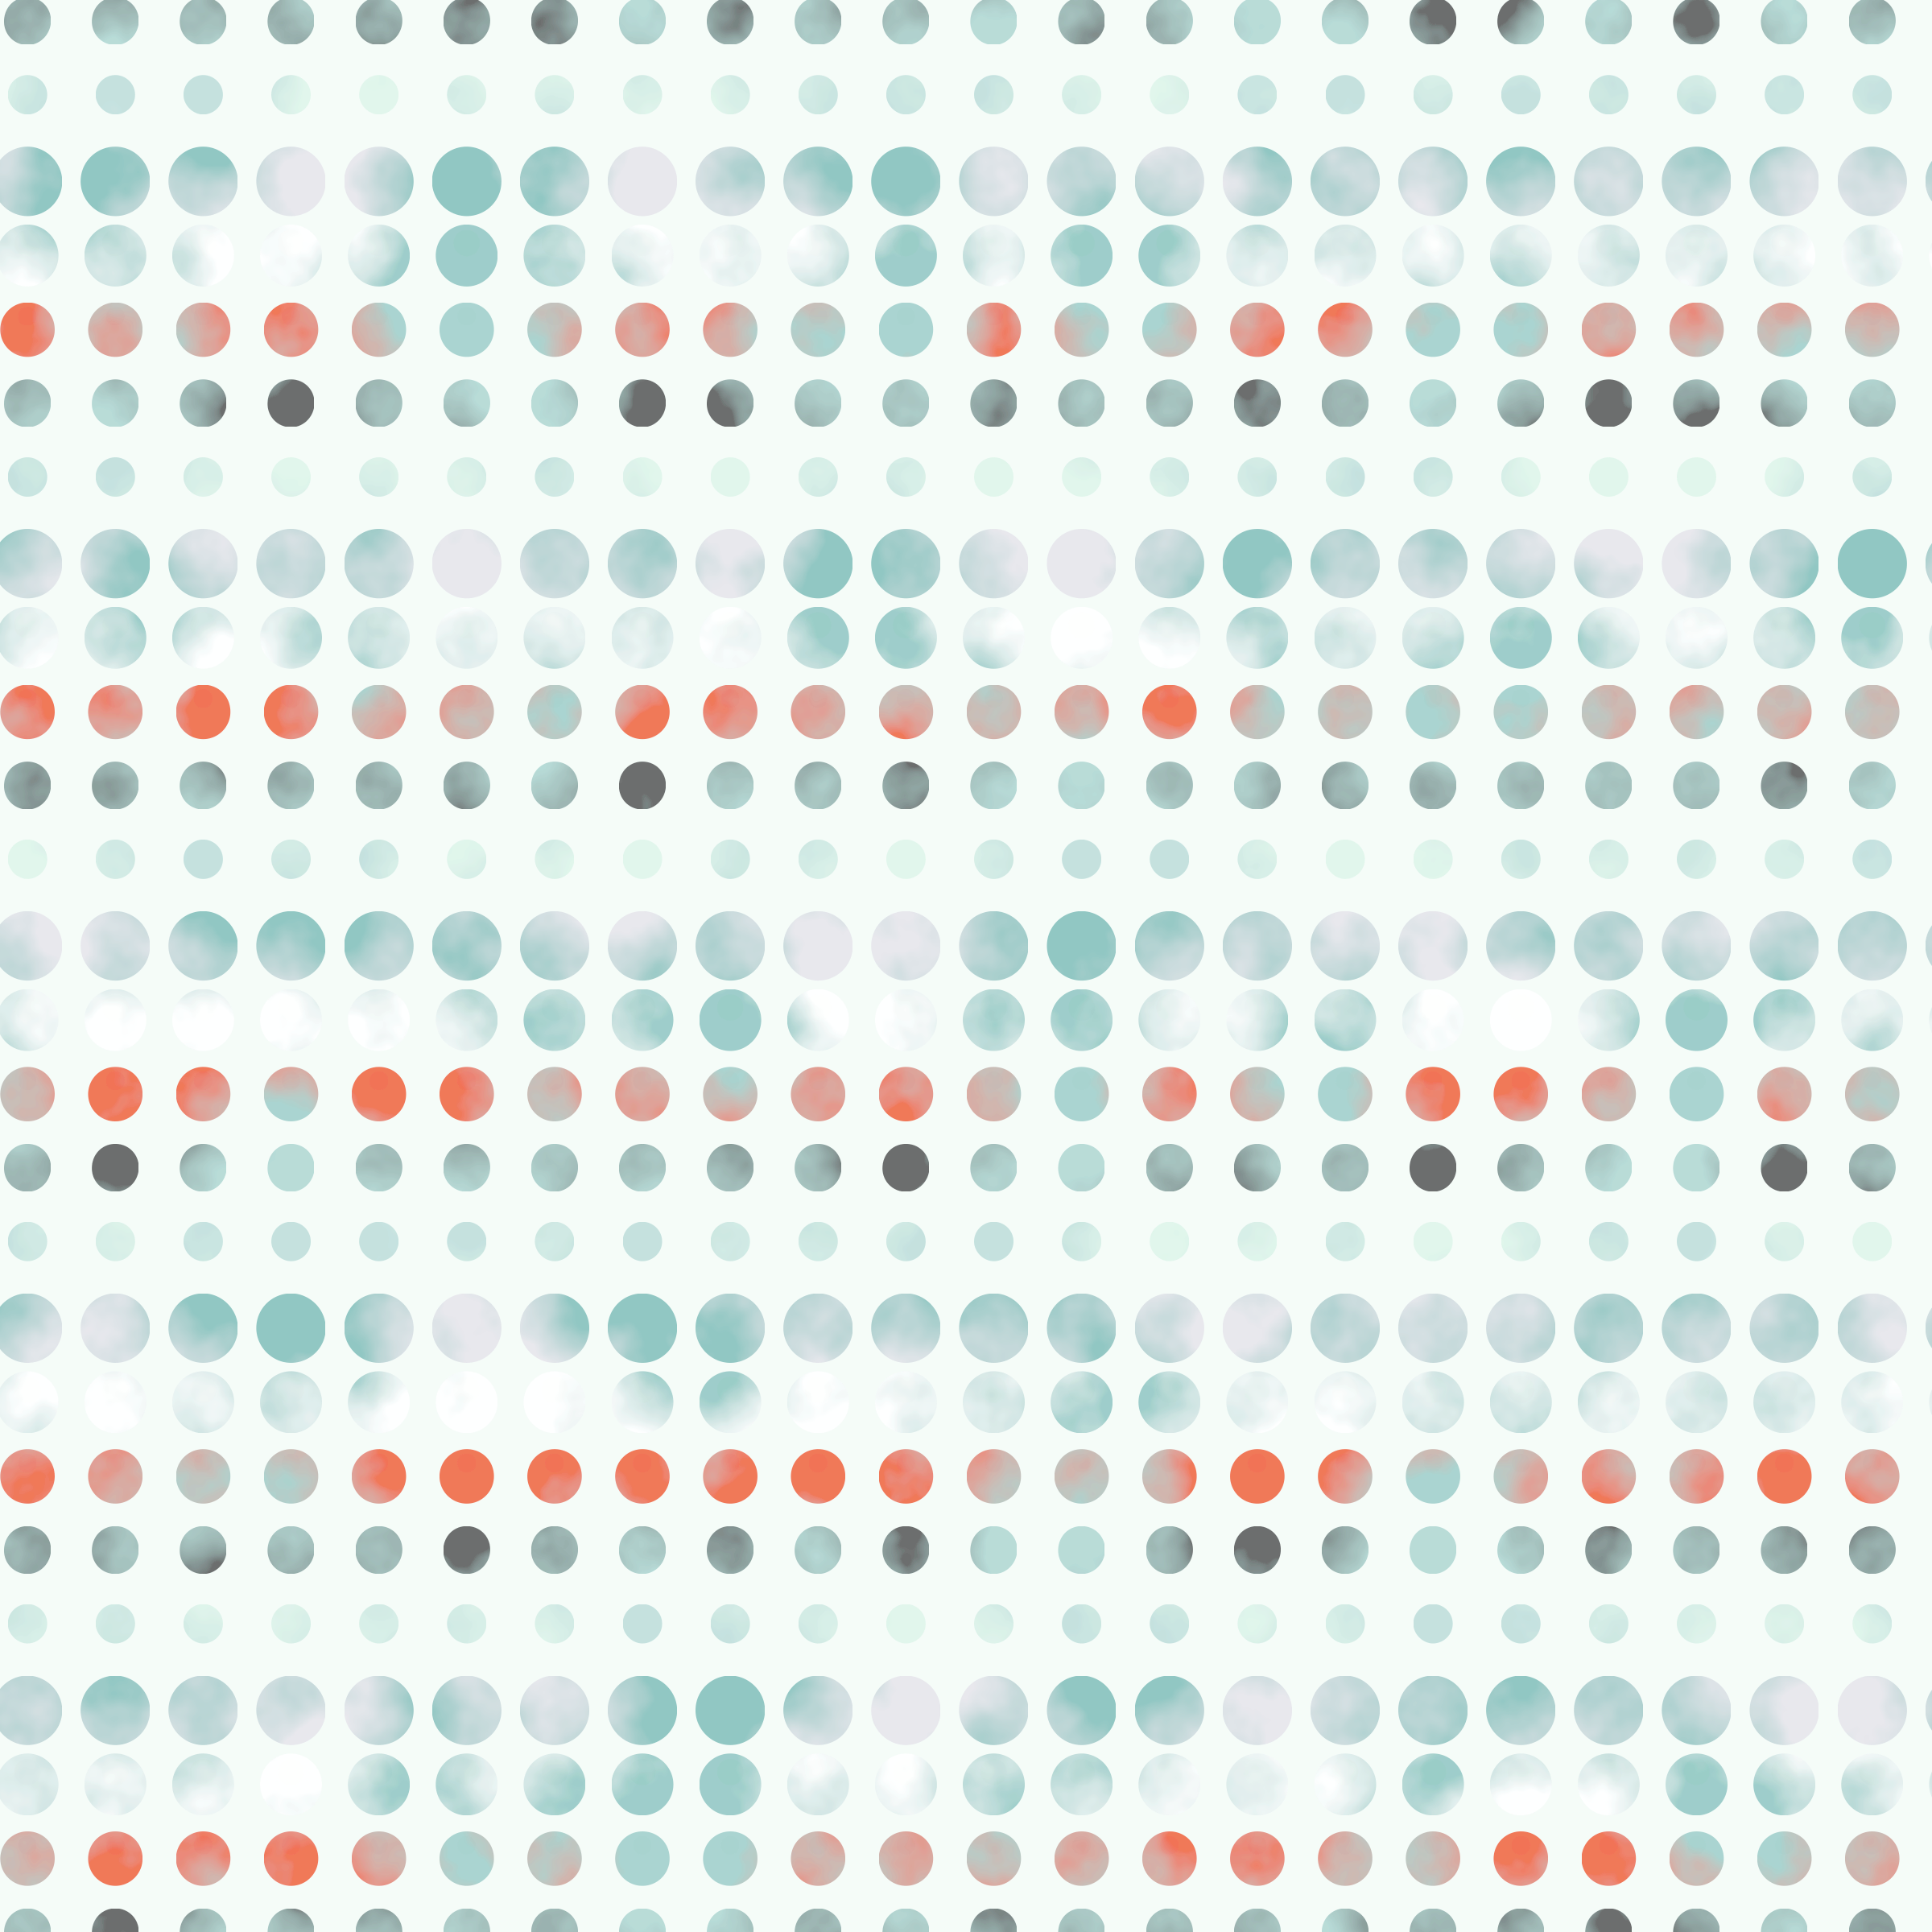 dots by pictomago